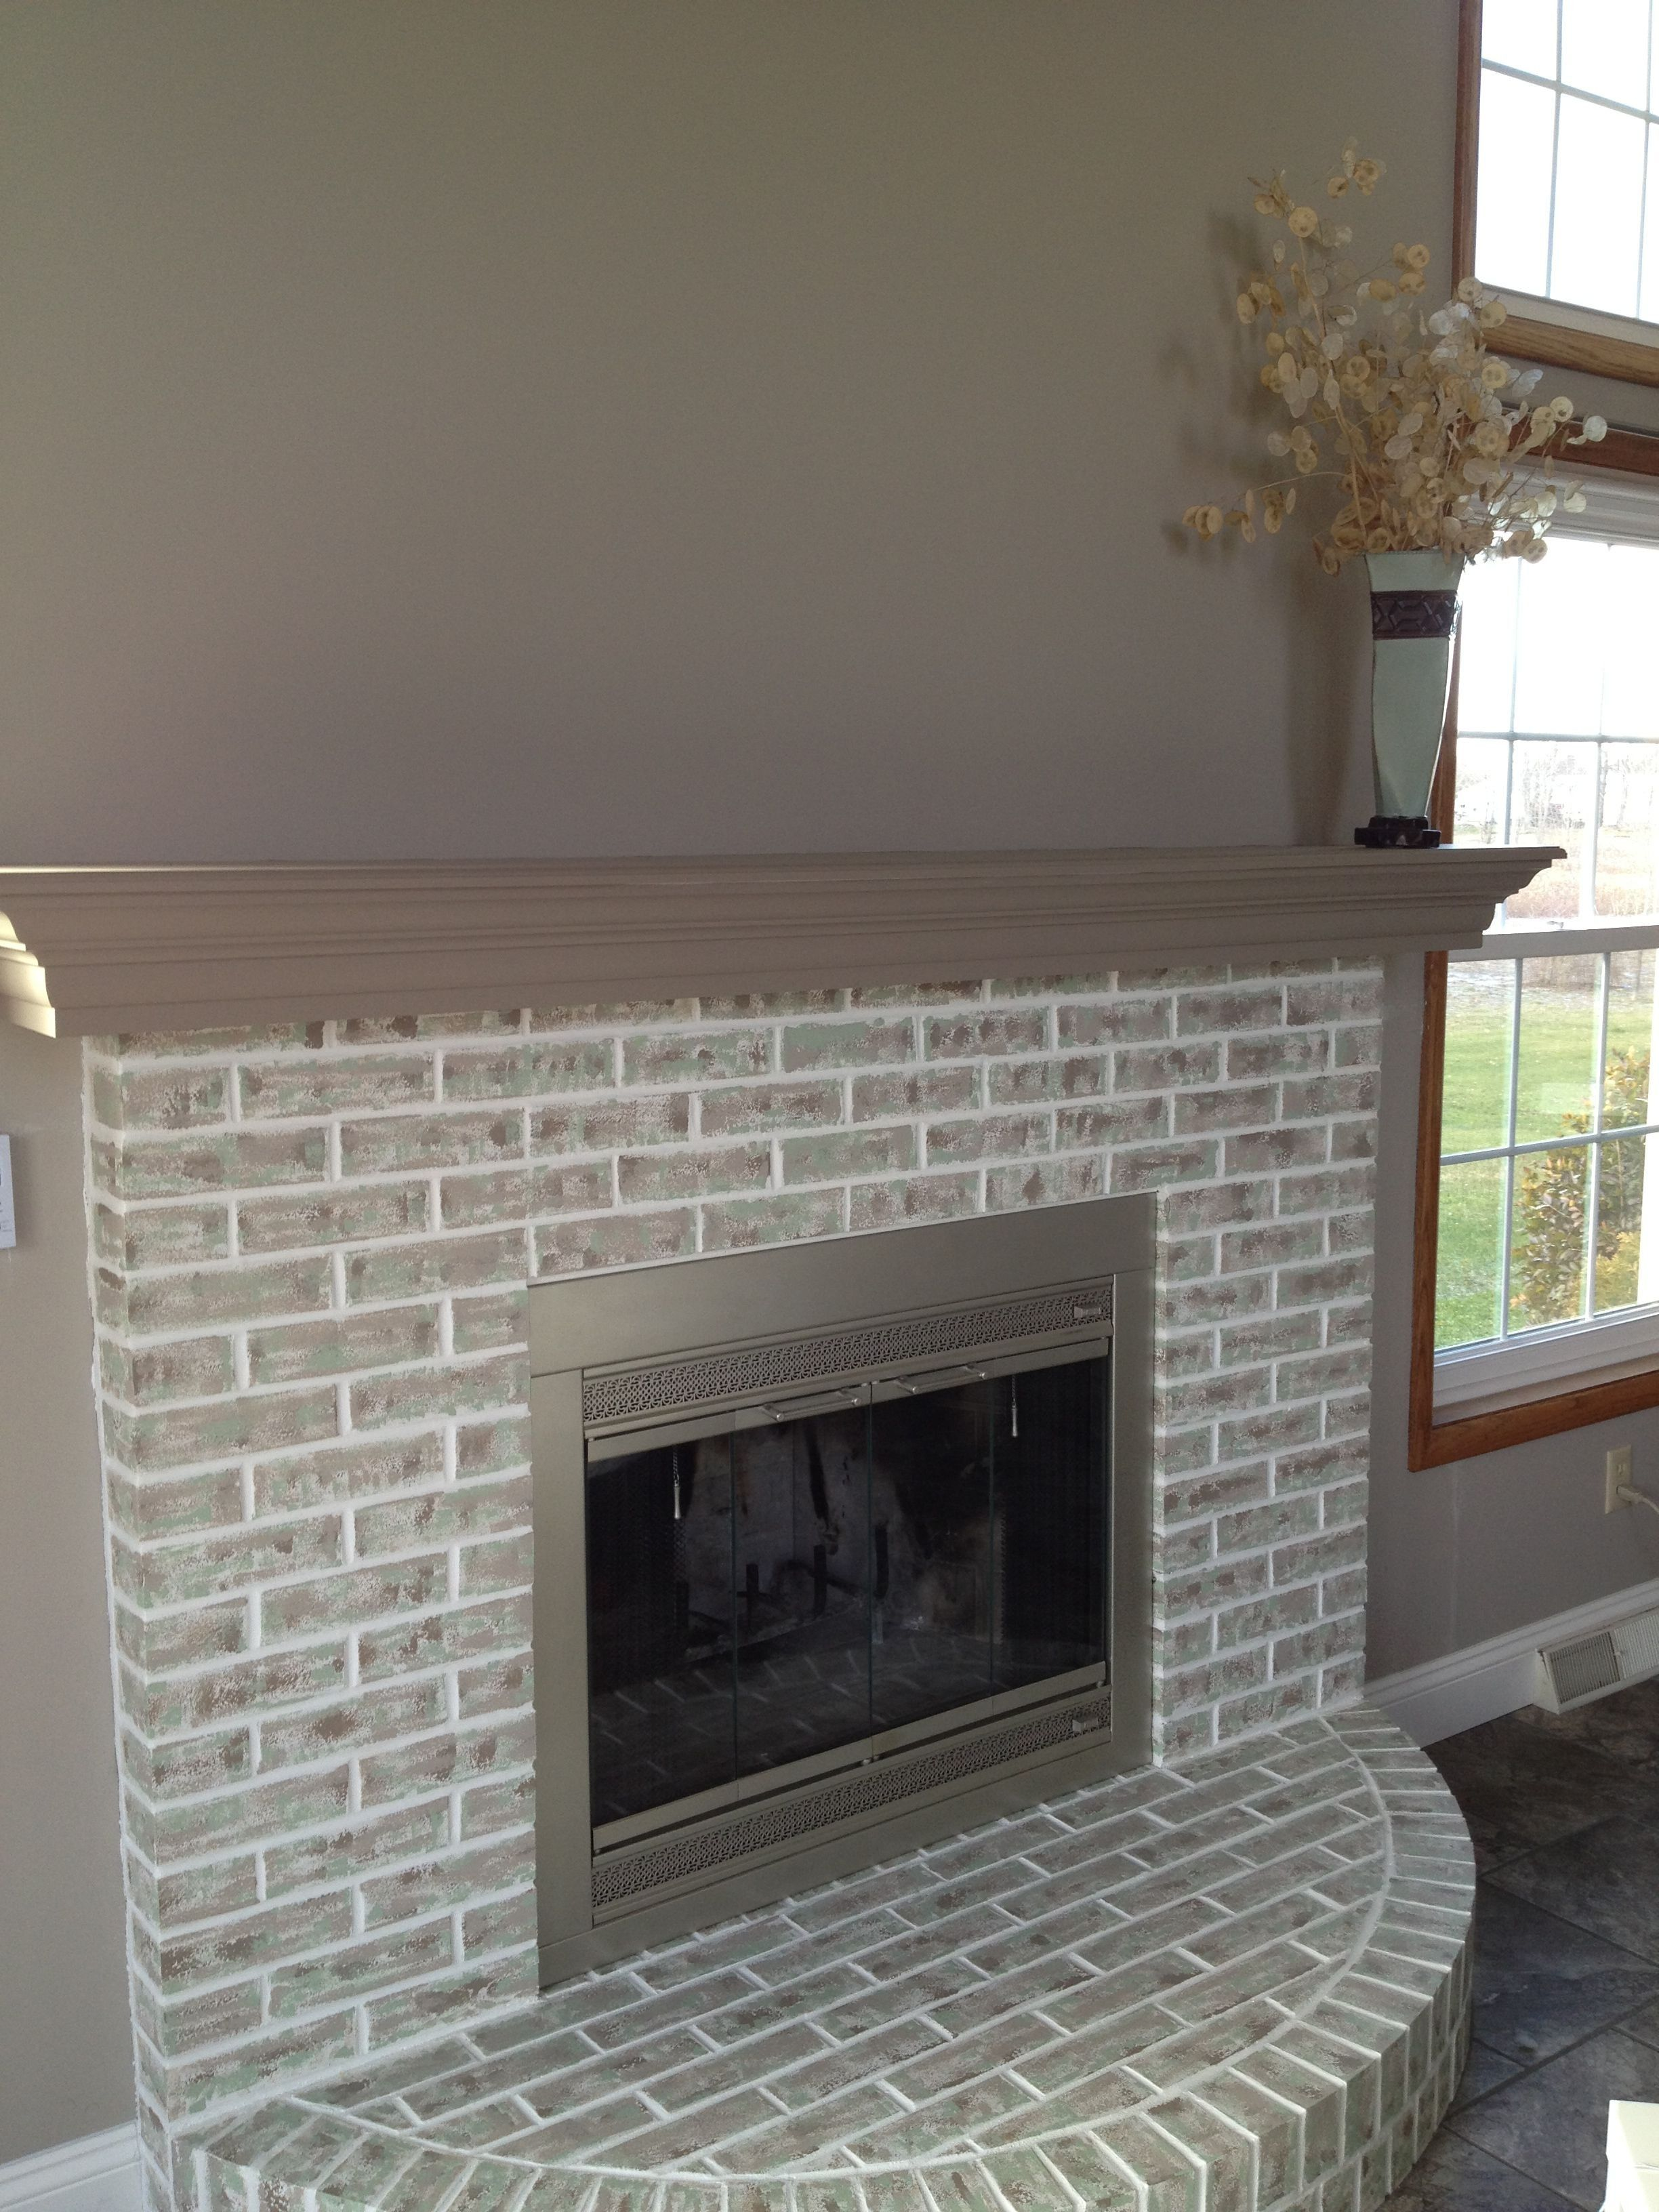 Winsome Before Grey Paint Red Brick Fireplace Makeover Crux Wash On A After Fireplaces Home Design Supreme Imposing Brickfireplace Living Room